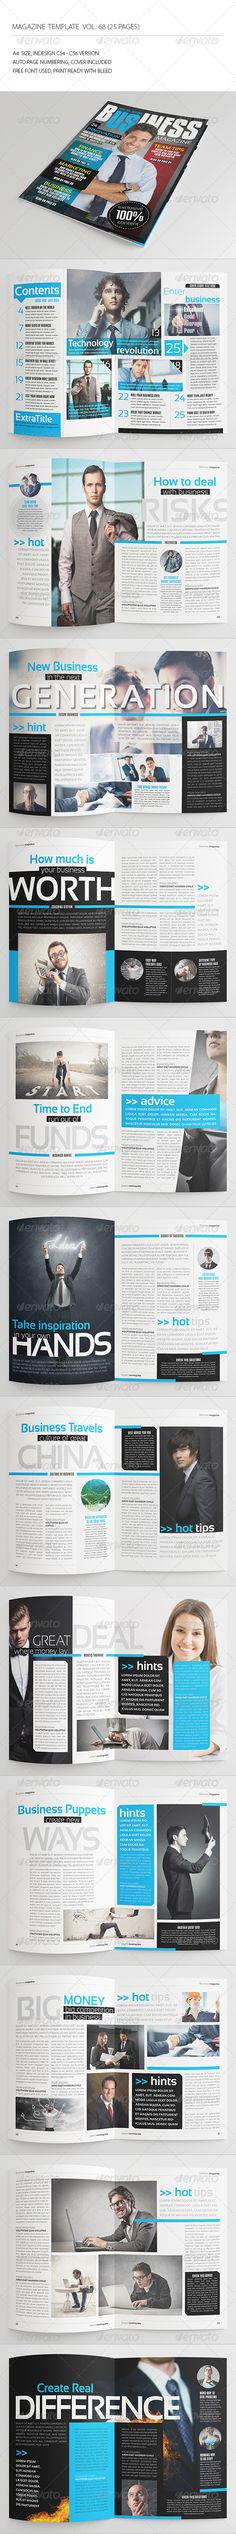 25 Pages Business Magazine Vol68 — InDesign INDD #banking #business • Available here → https://graphicriver.net/item/25-pages-business-magazine-vol68/8486083?ref=pxcr